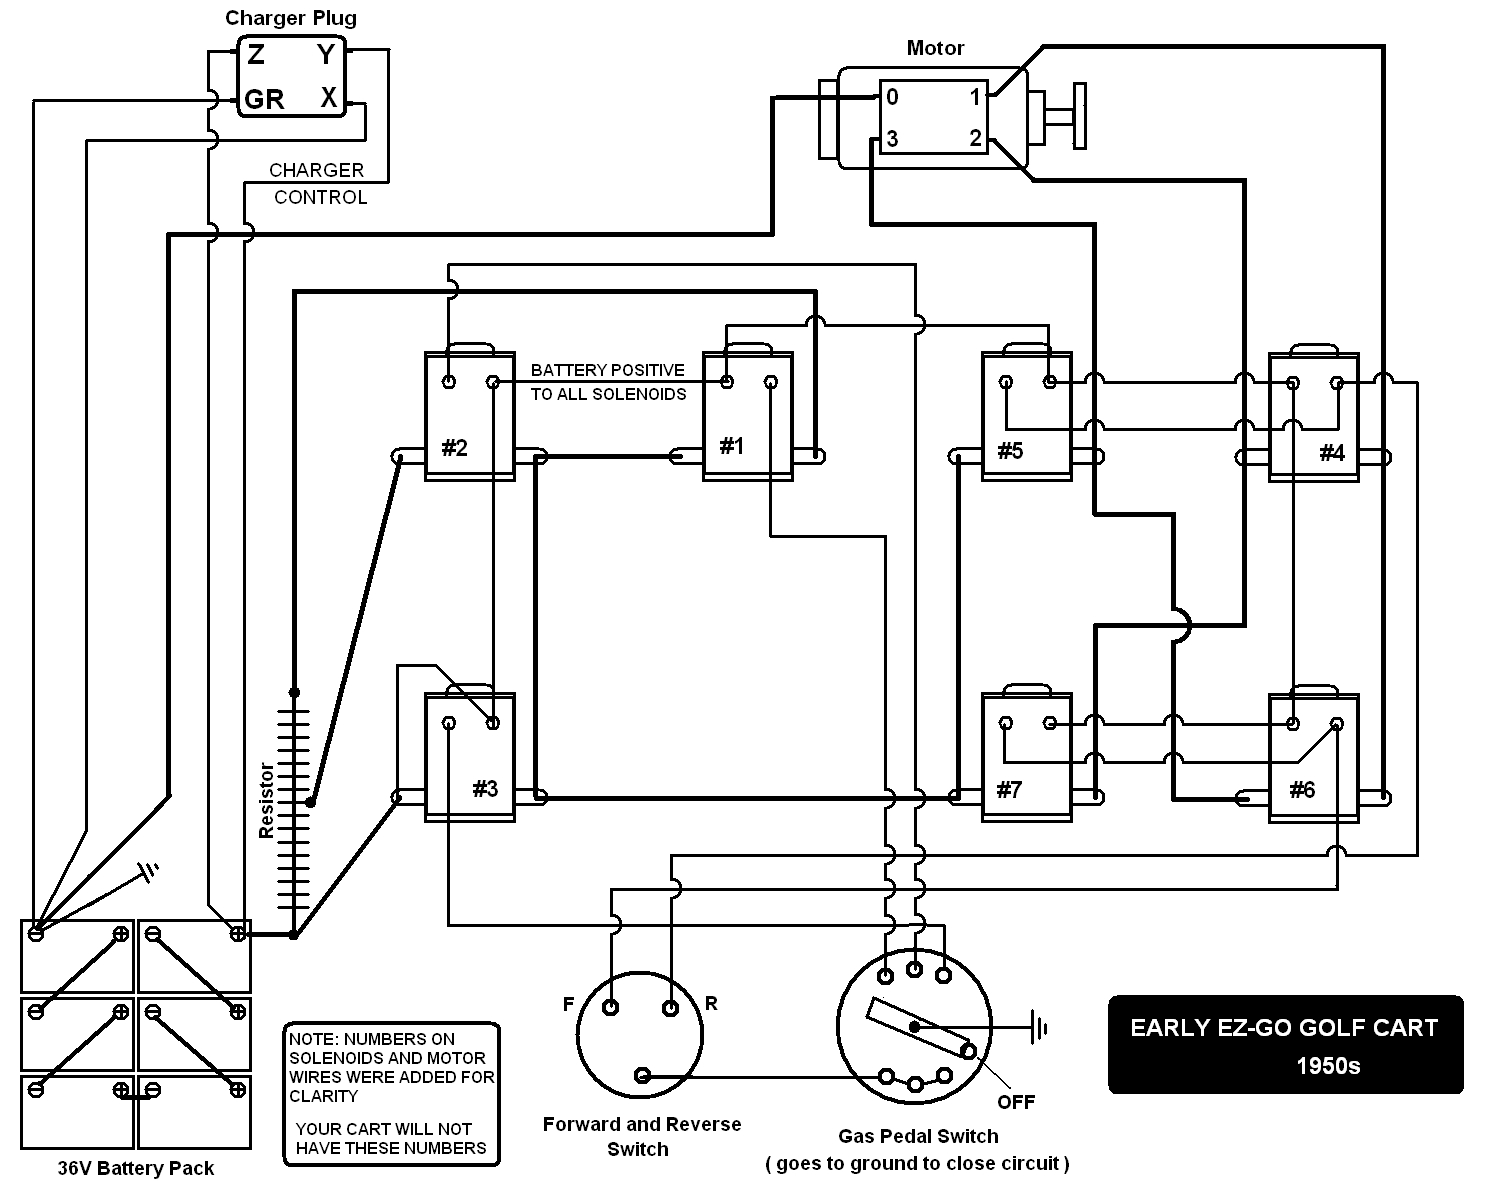 hight resolution of 2006 ez go wiring diagram simple wiring schema leeson motor wiring diagram 36 volt ezgo wiring